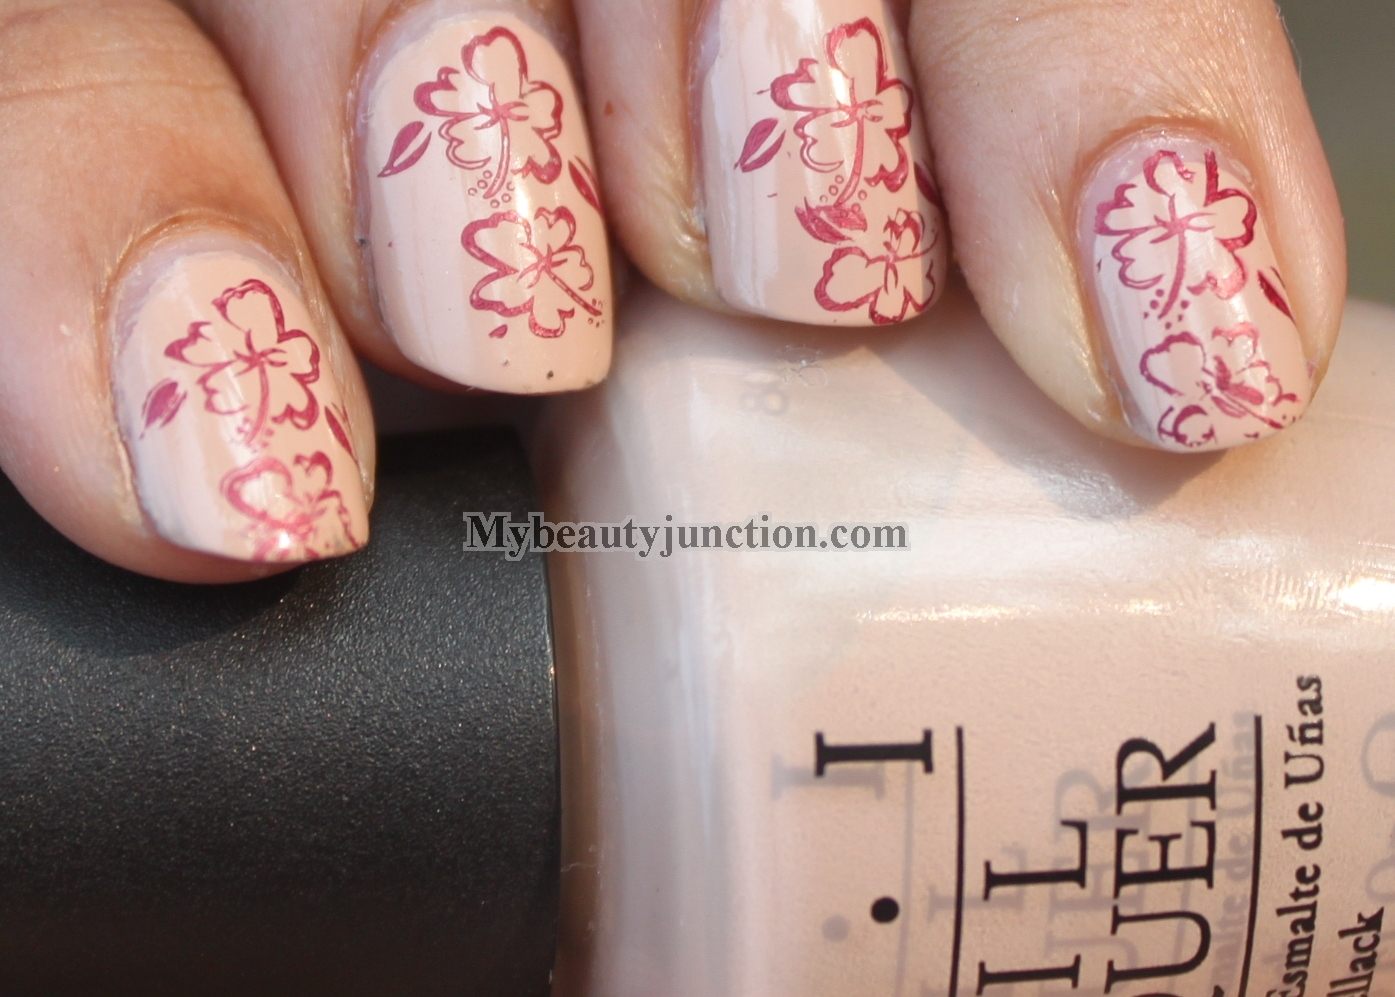 Stamping Nail Art Tutorial Ii With Konad Image Plate And Opi